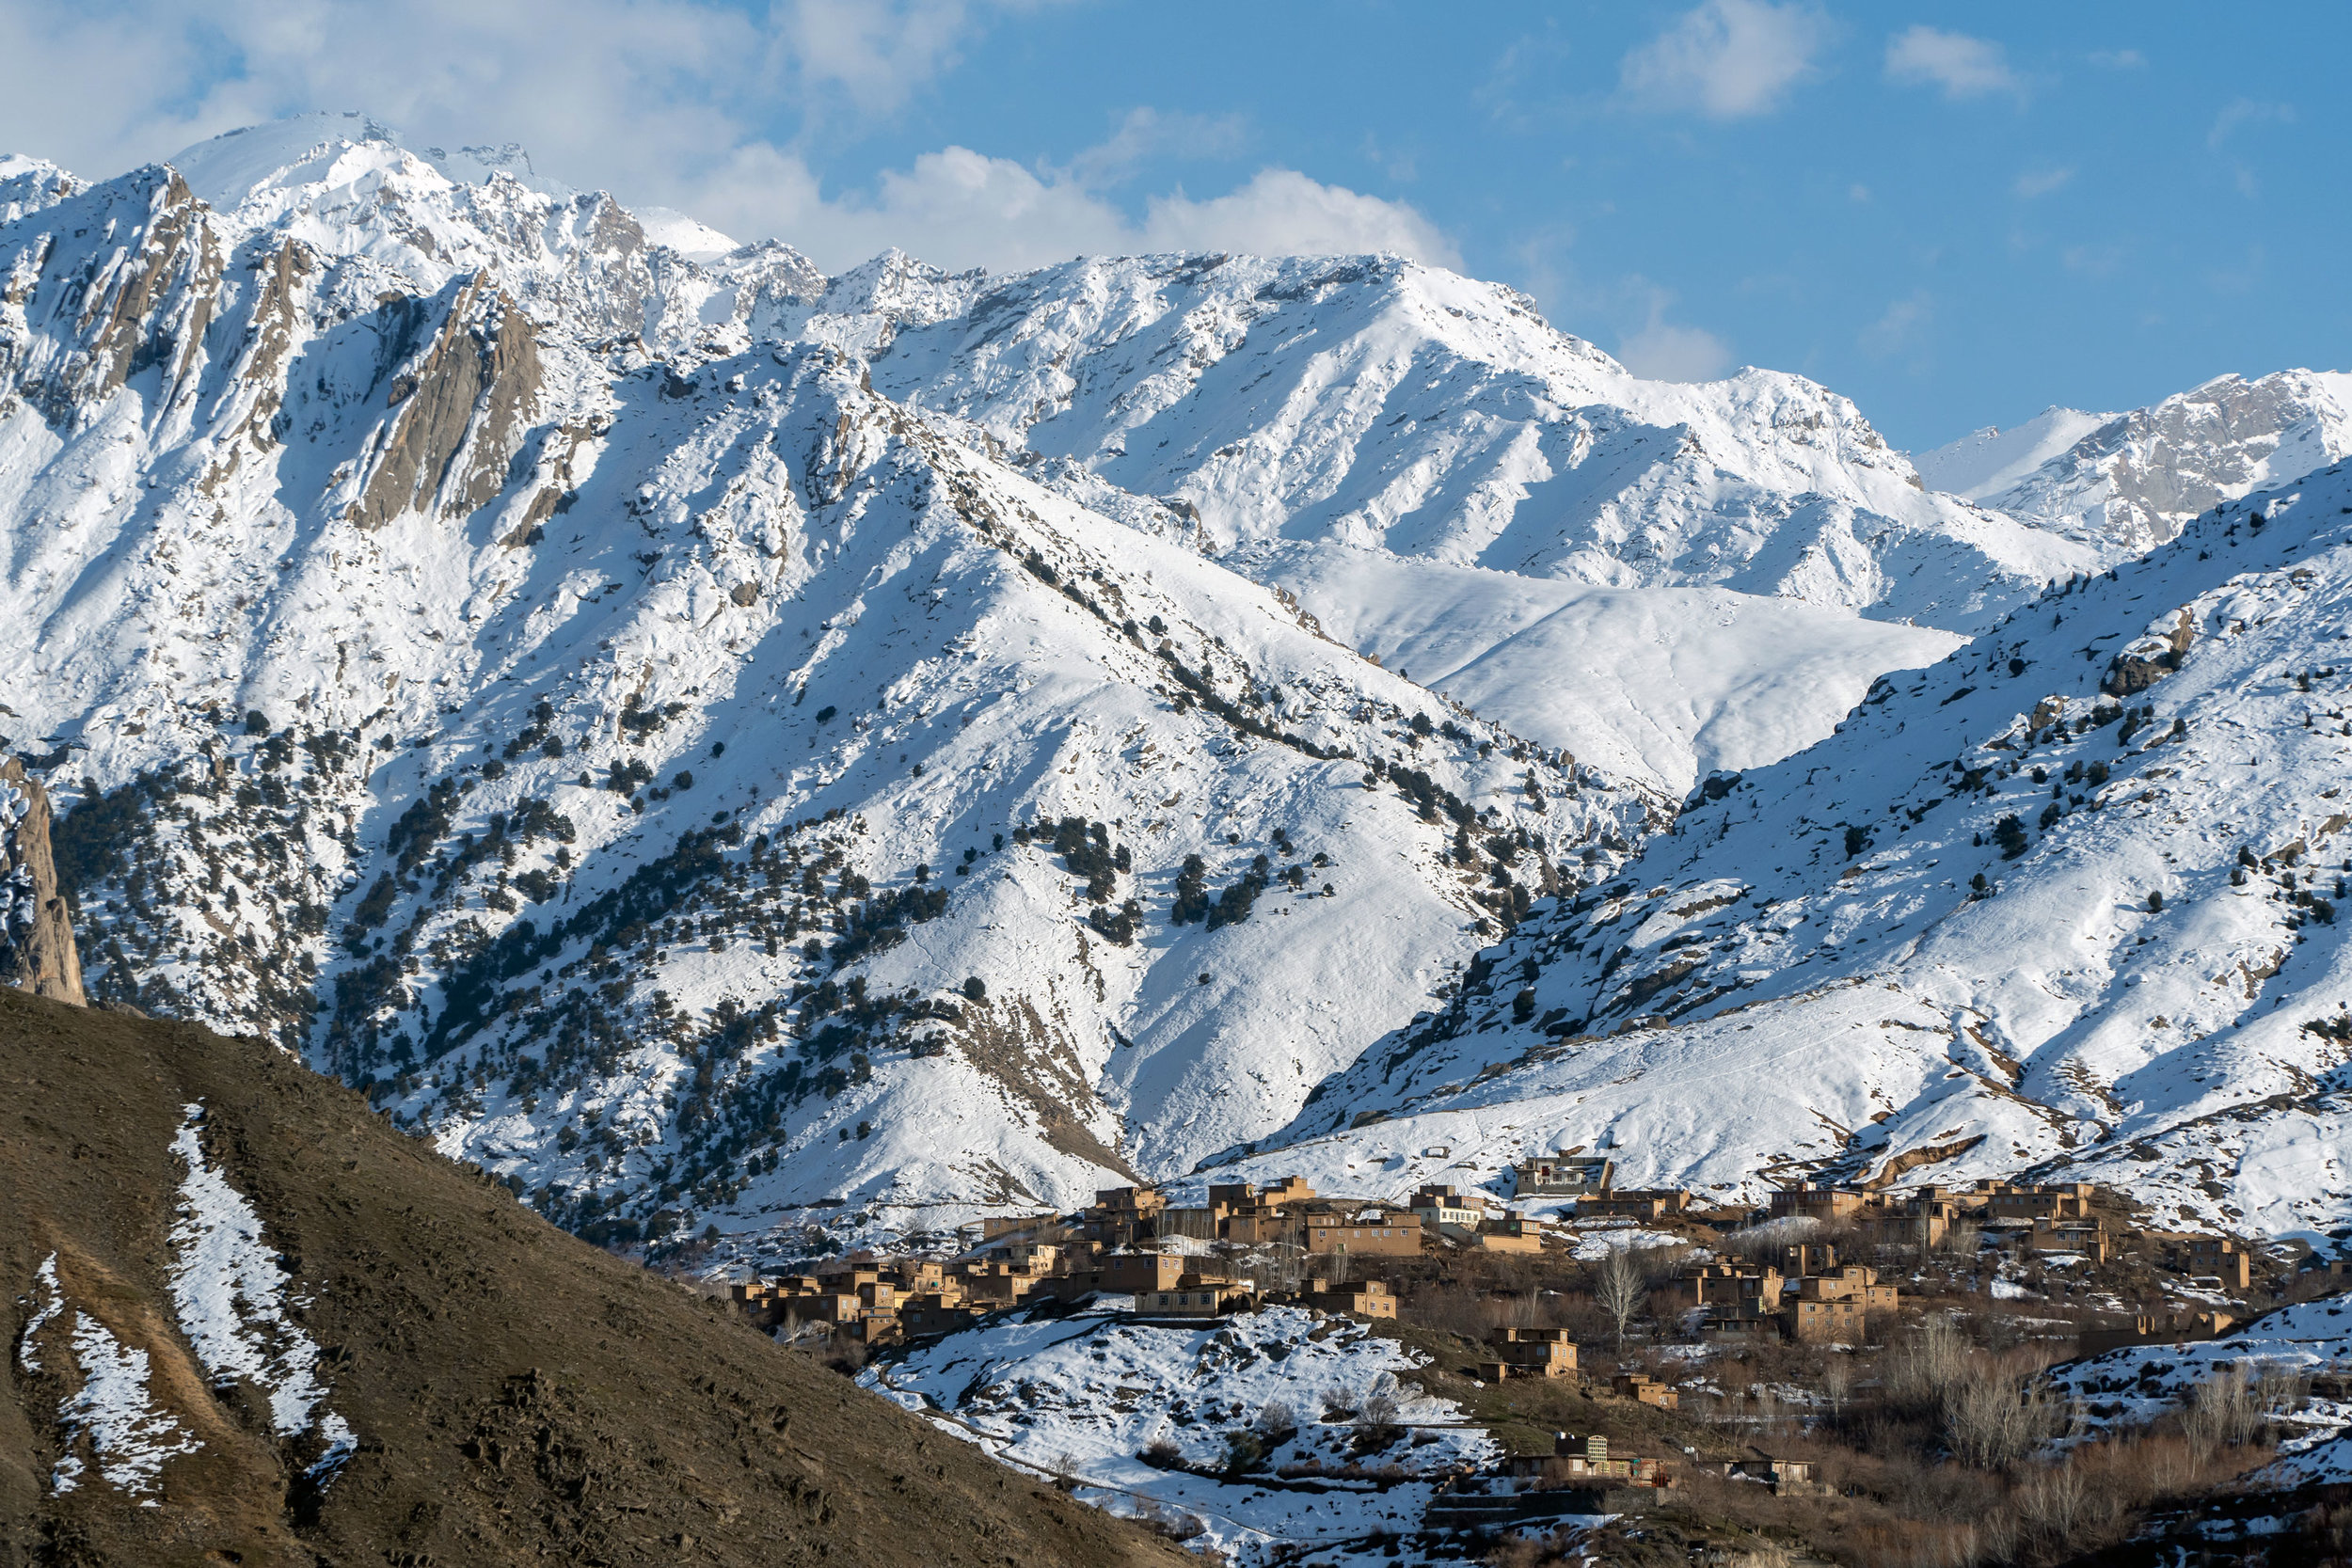 Village in the Panjshir Valley